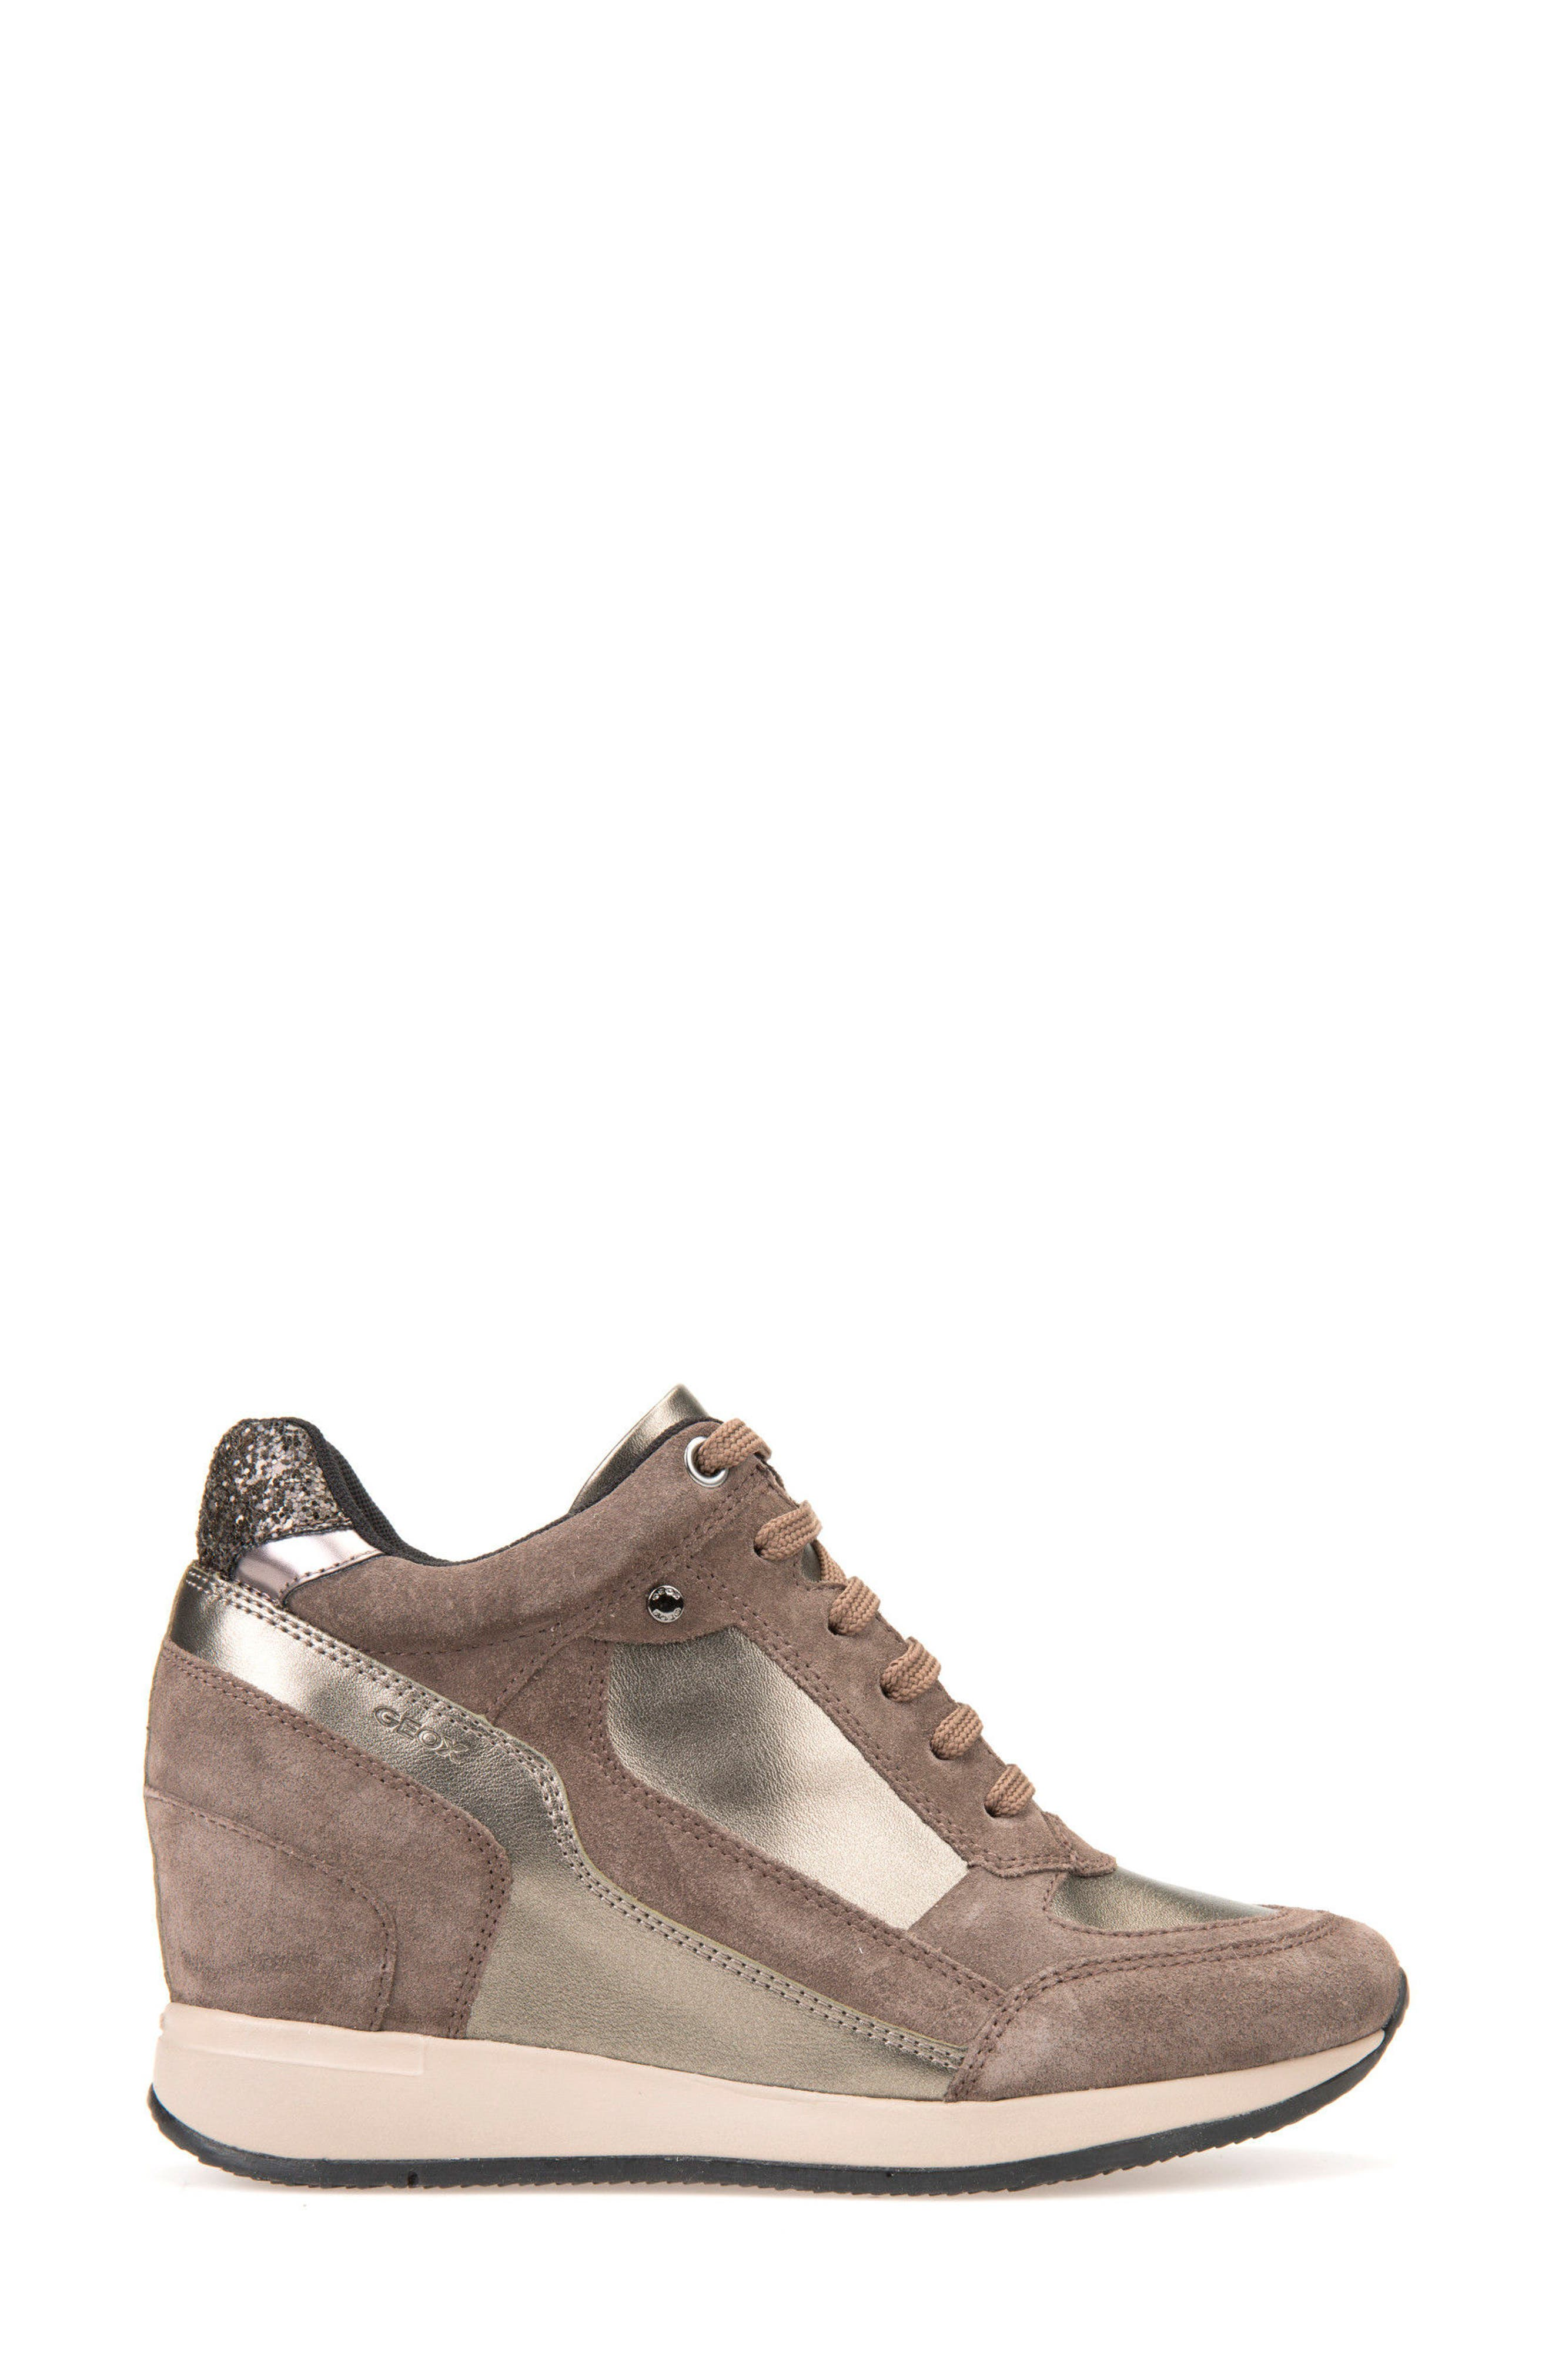 Alternate Image 3  - Geox Nydame Wedge Sneaker (Women)